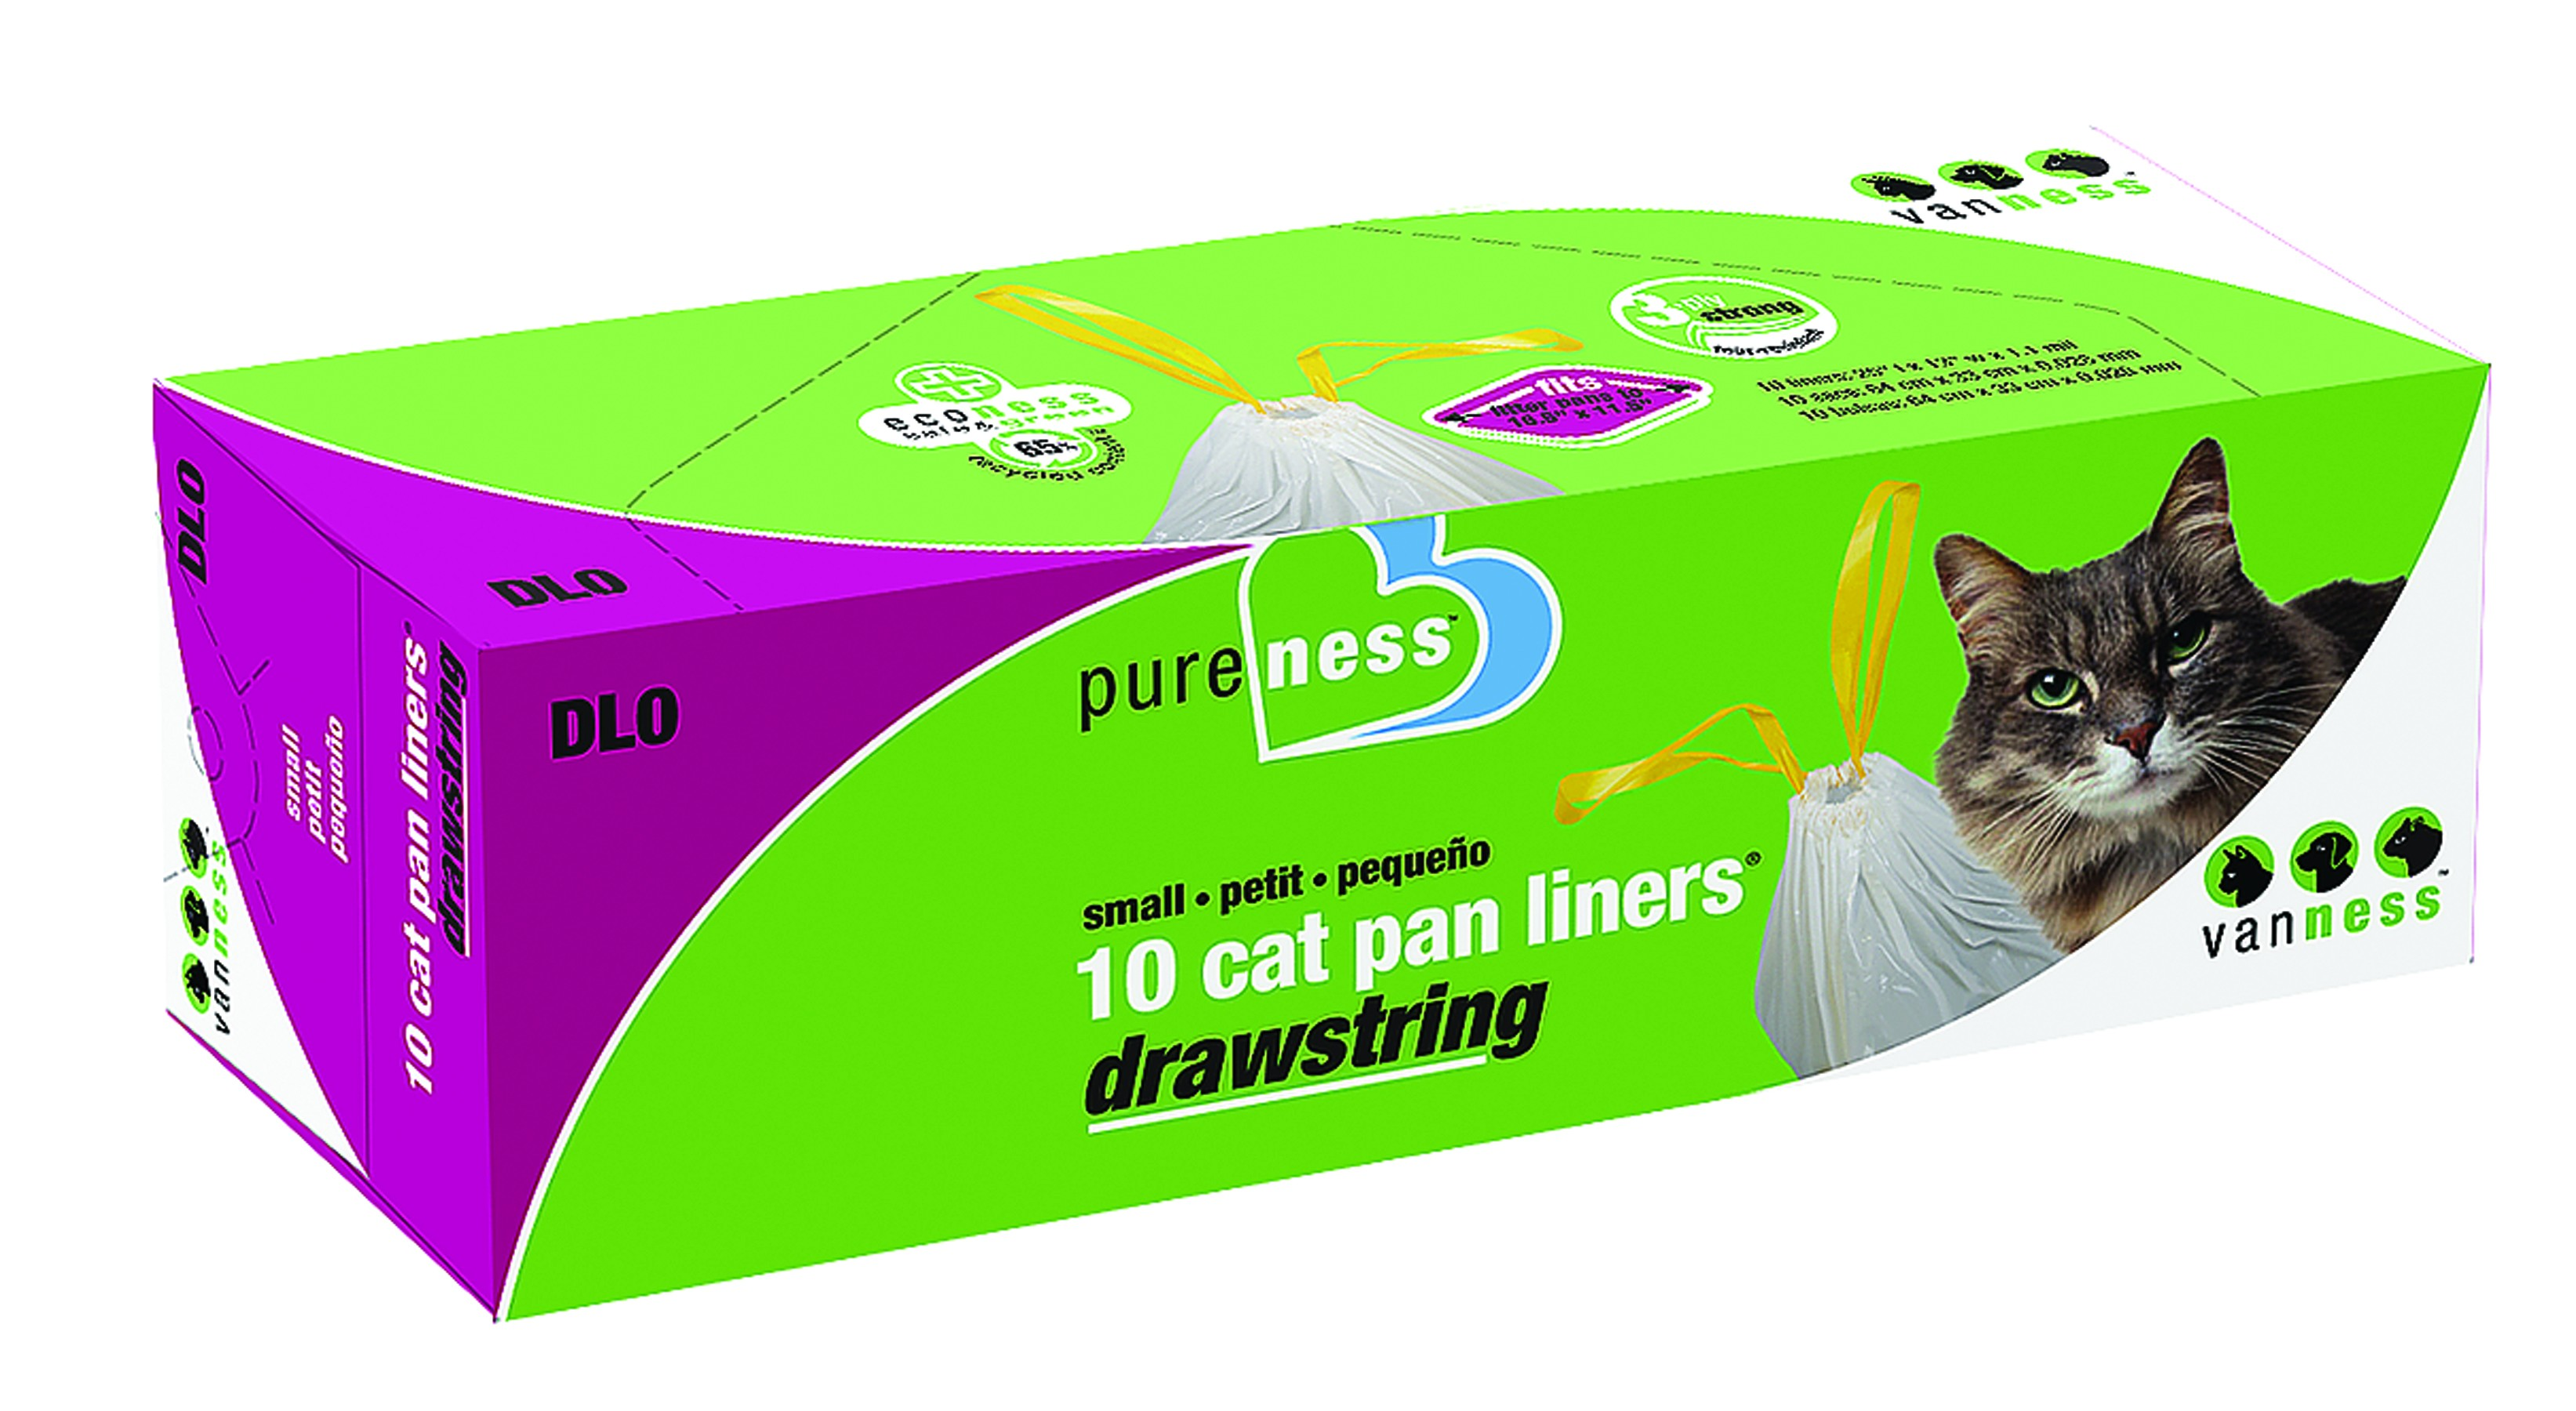 Cat Litter Boxes Drawstring Liner 10 Pack